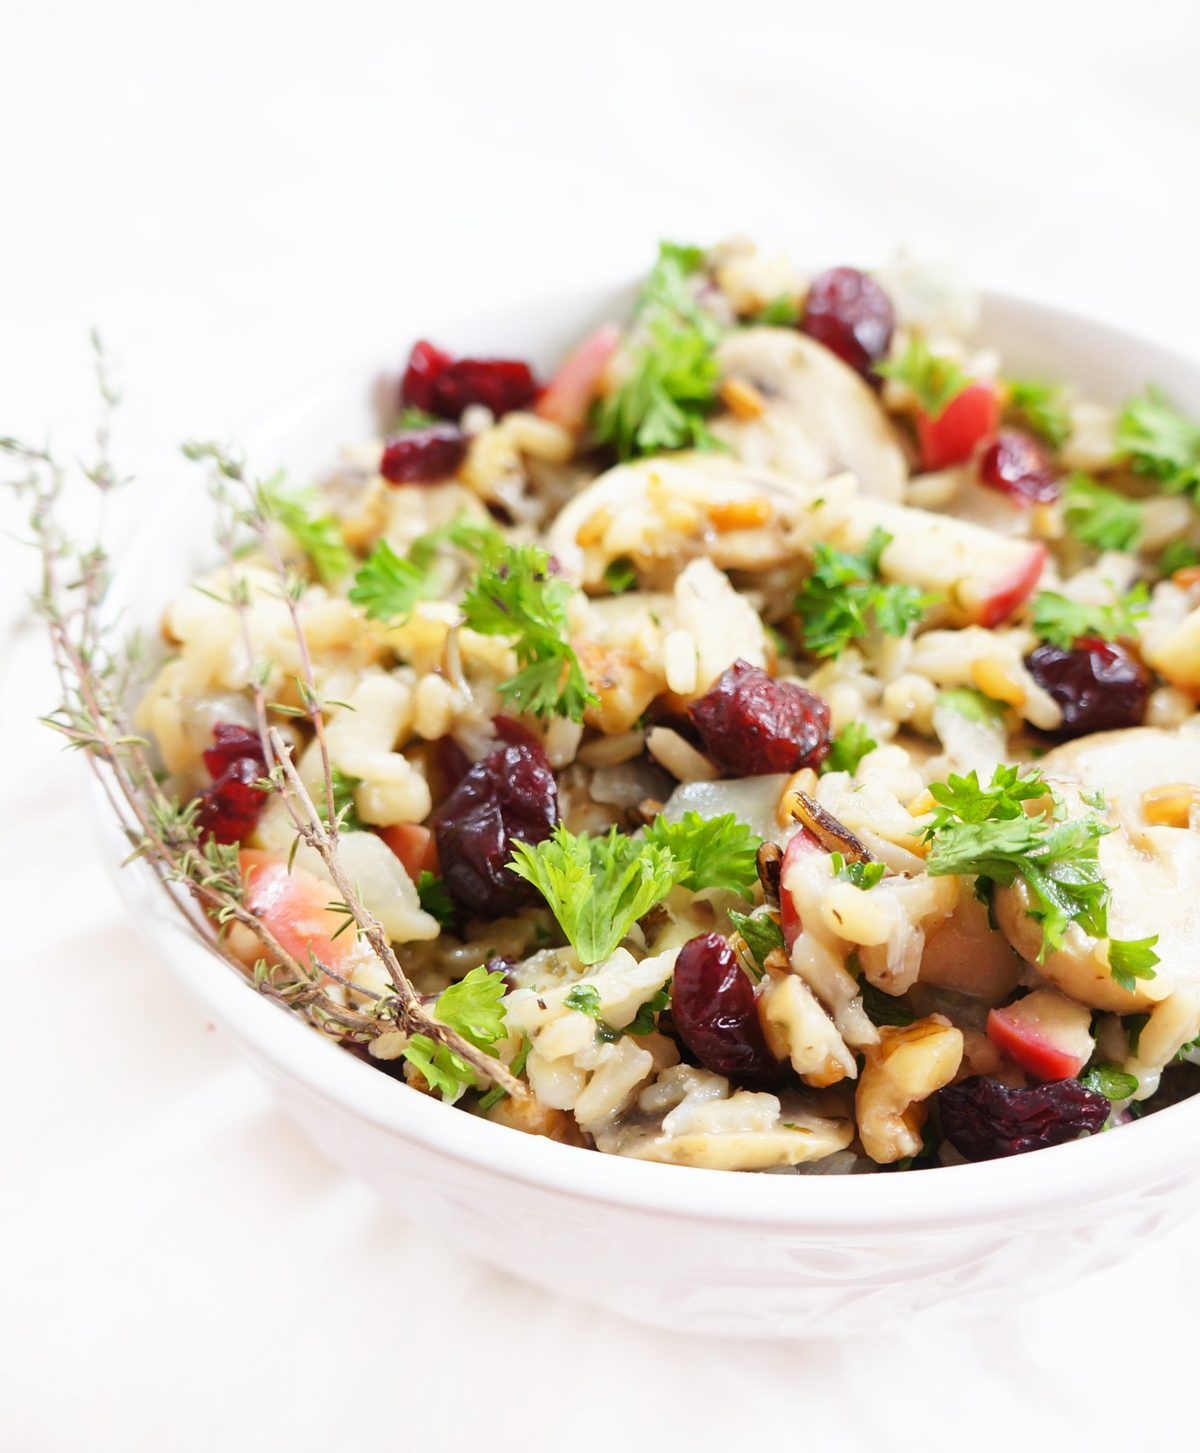 ... wild rice, dried cranberries and mushrooms, and some healthy omega-3